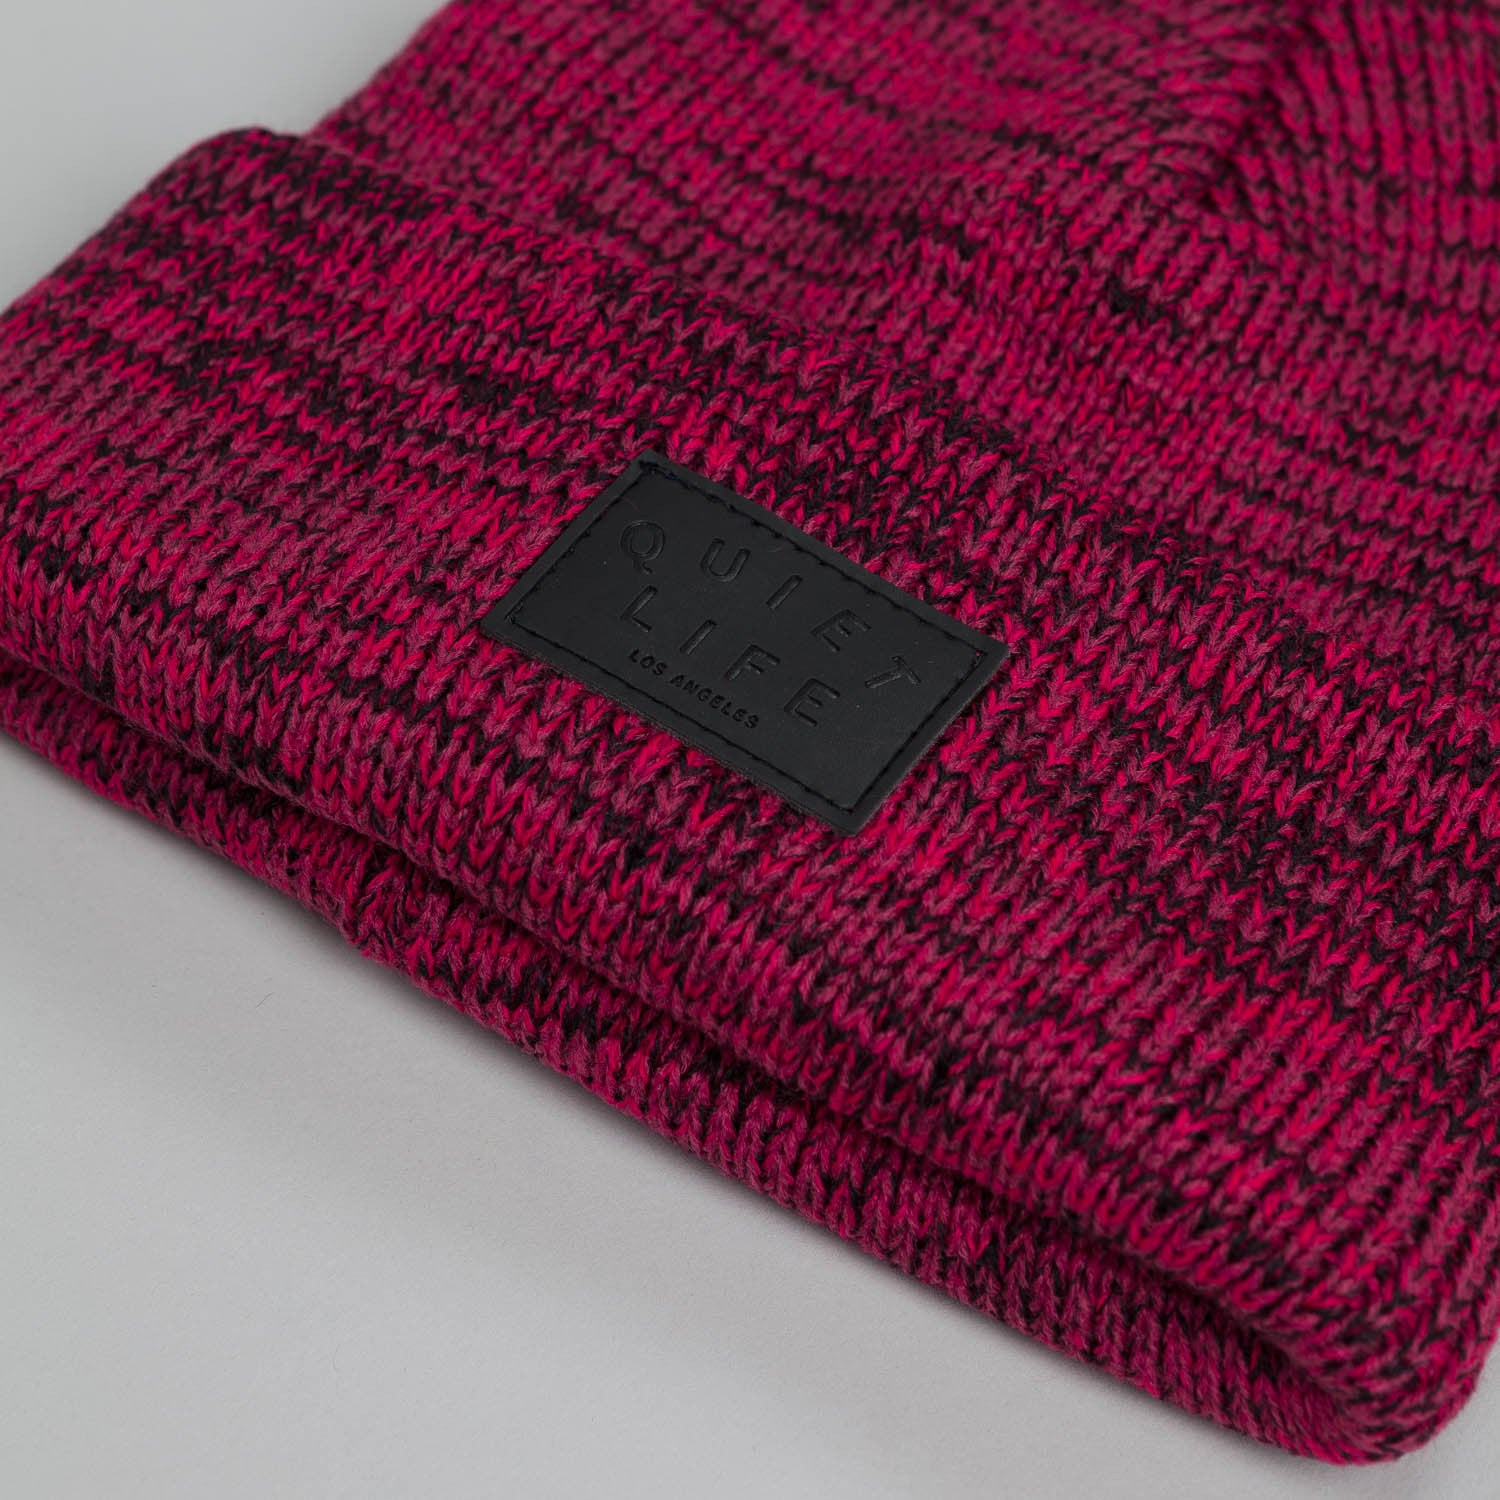 The Quiet Life Marled Beanie Red / Black